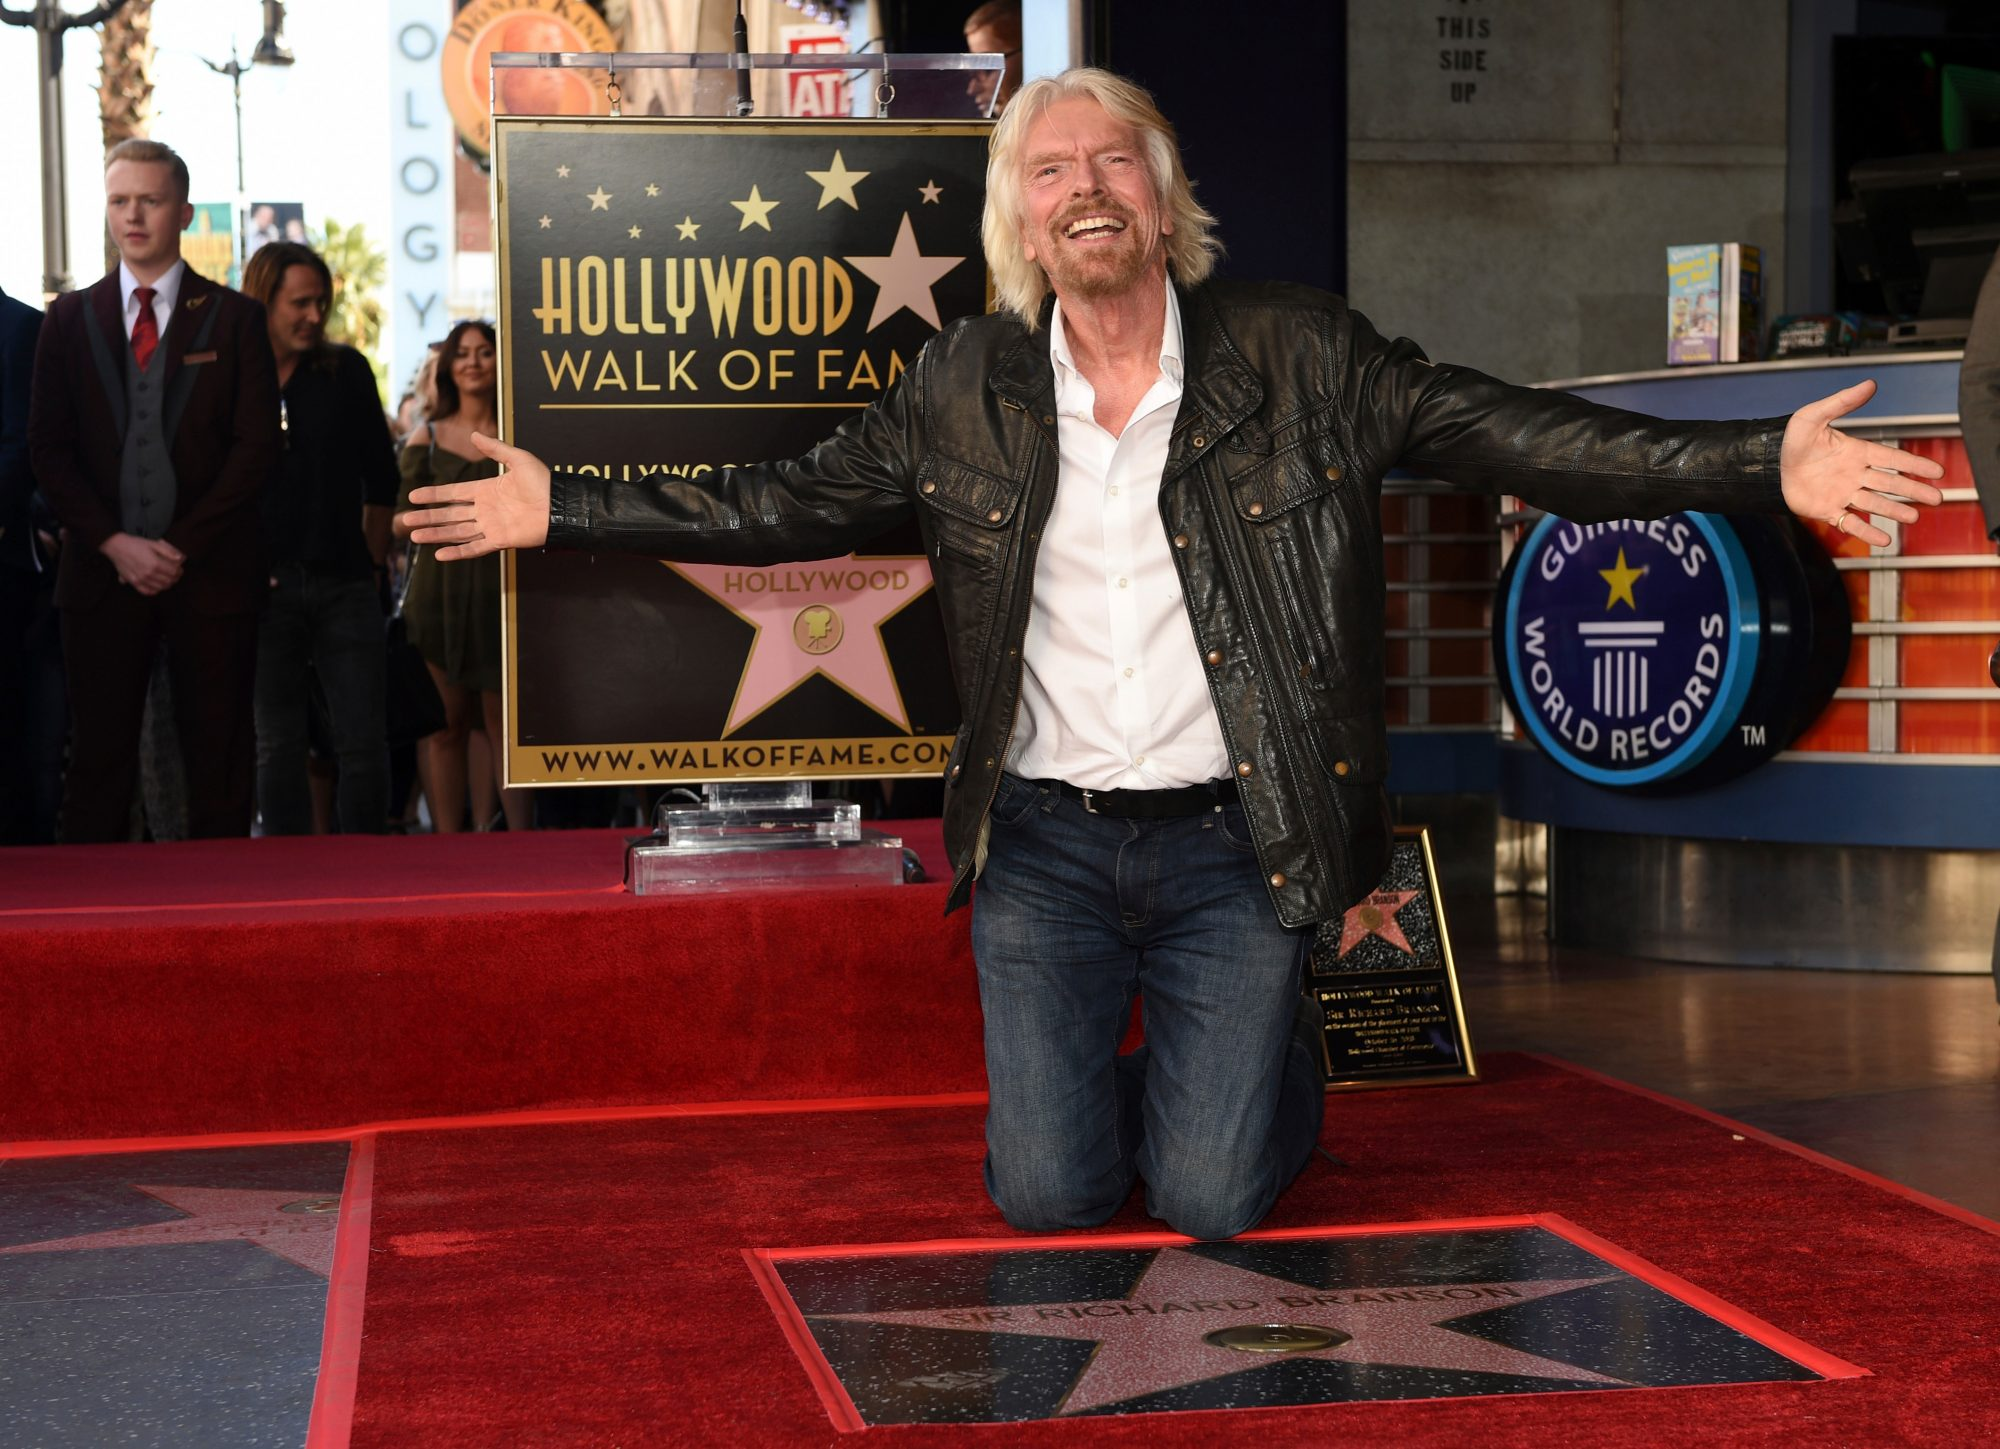 Sir Richard Branson Honored with a Star on the Hollywood Walk of Fame, Los Angeles, USA - 16 Oct 2018